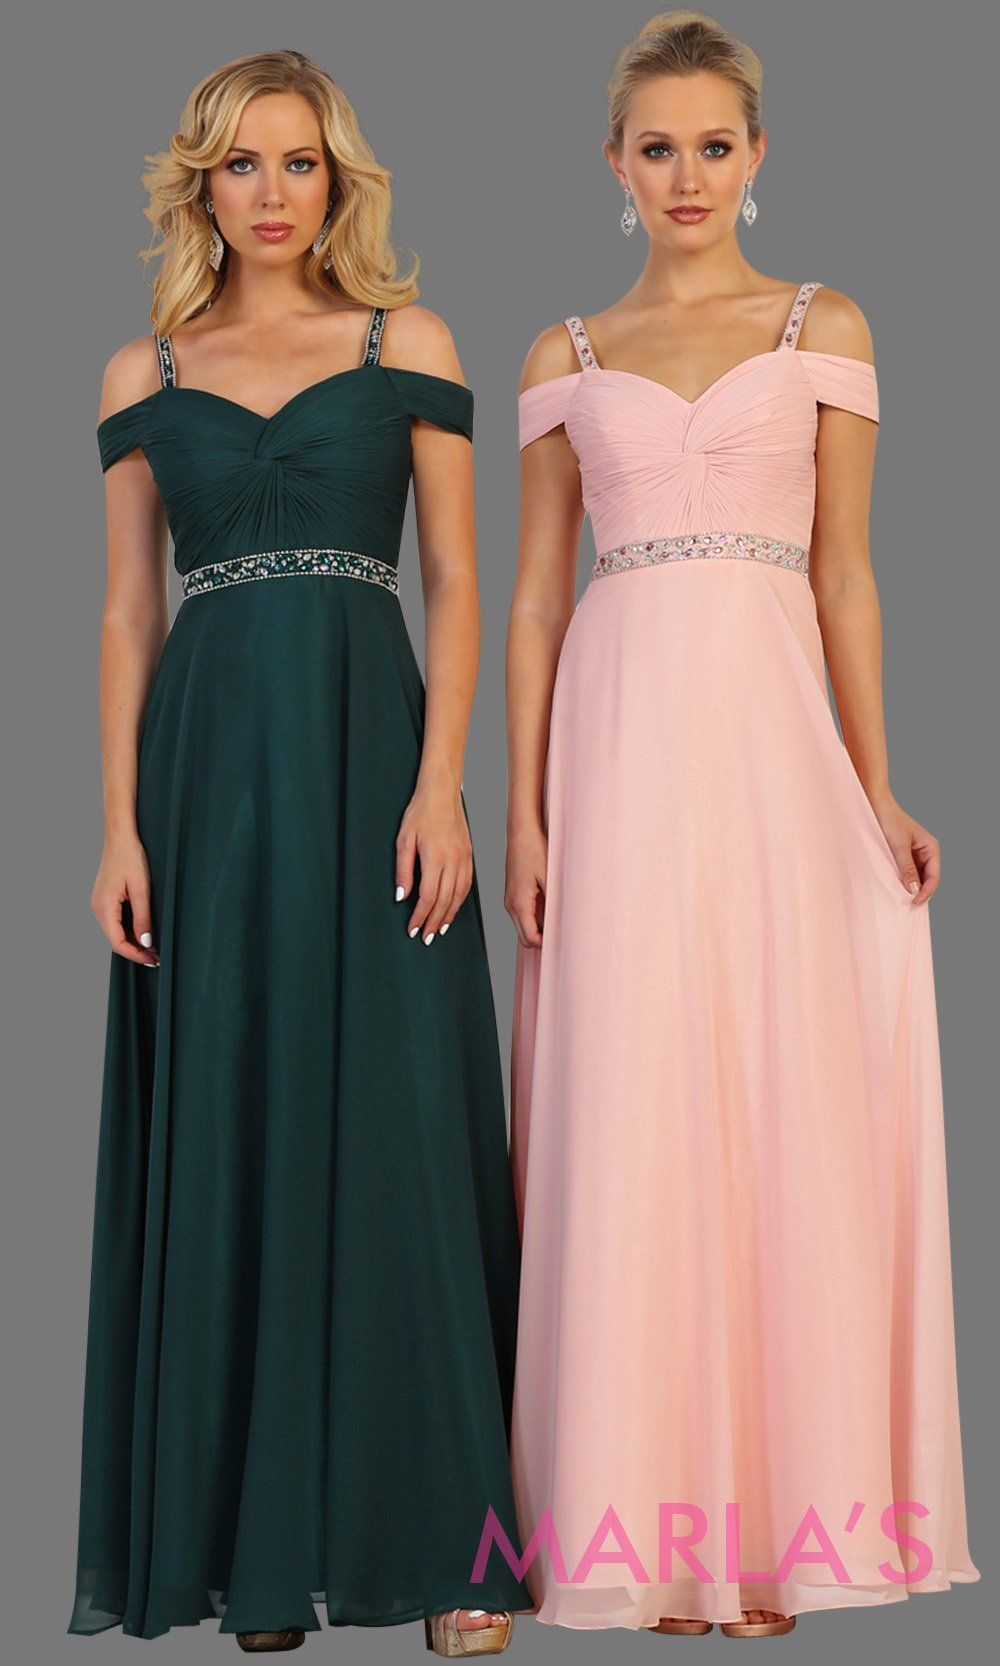 b661a1b71f3 Long dark green flowy dress with cold shoulder and beaded waist. Perfect  for prom